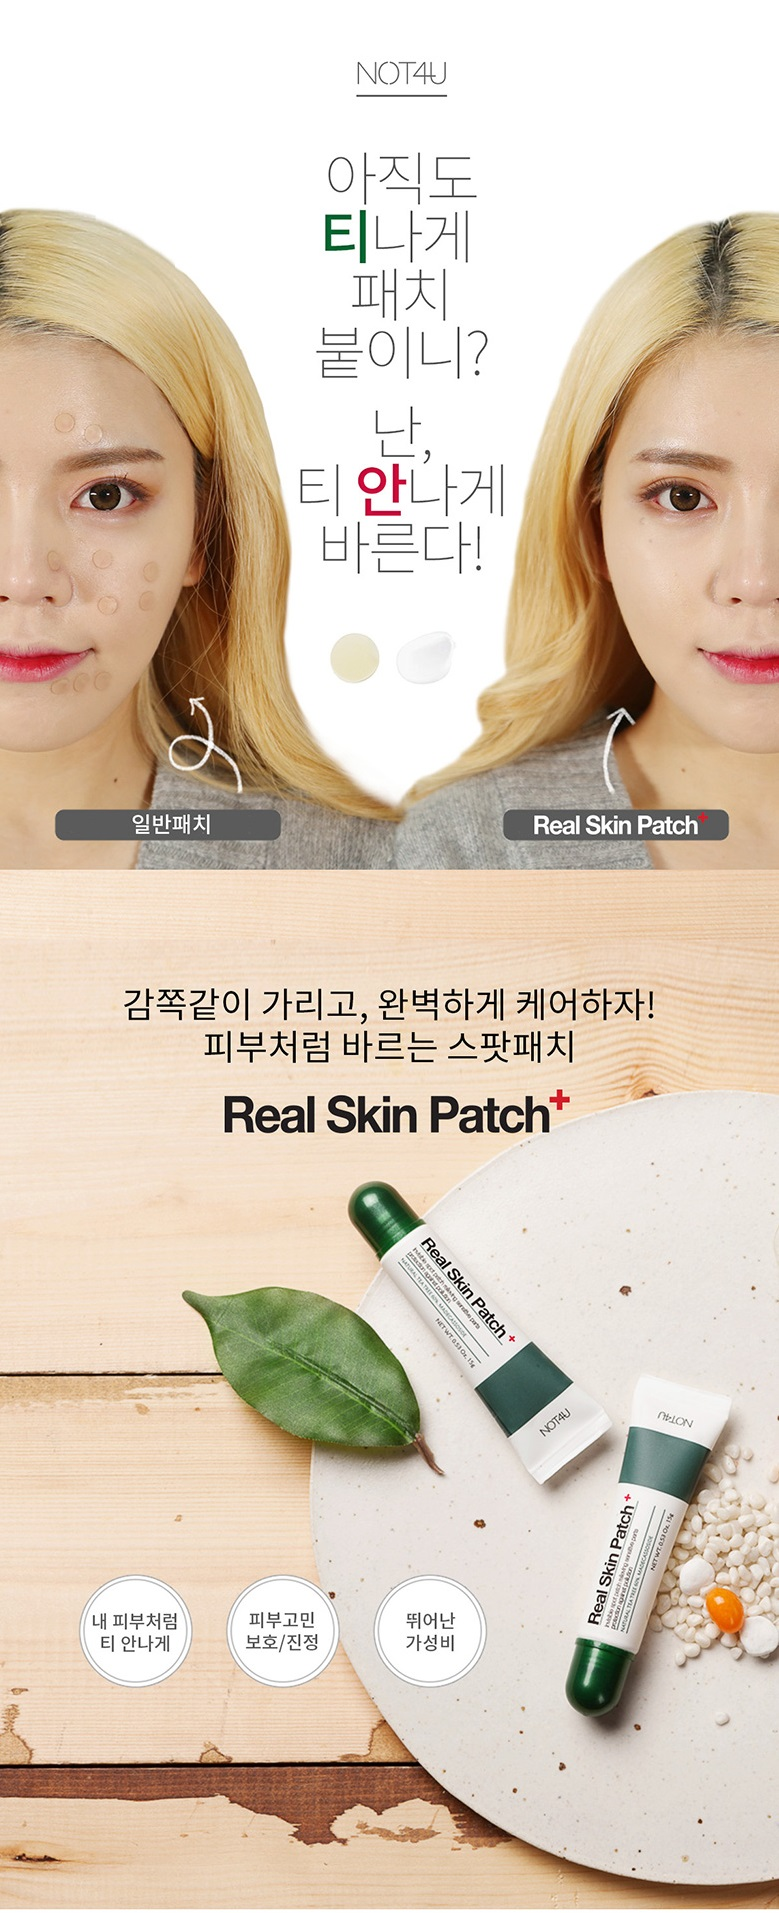 Gel trị mụn, vá da Not4U Real Skin Patch